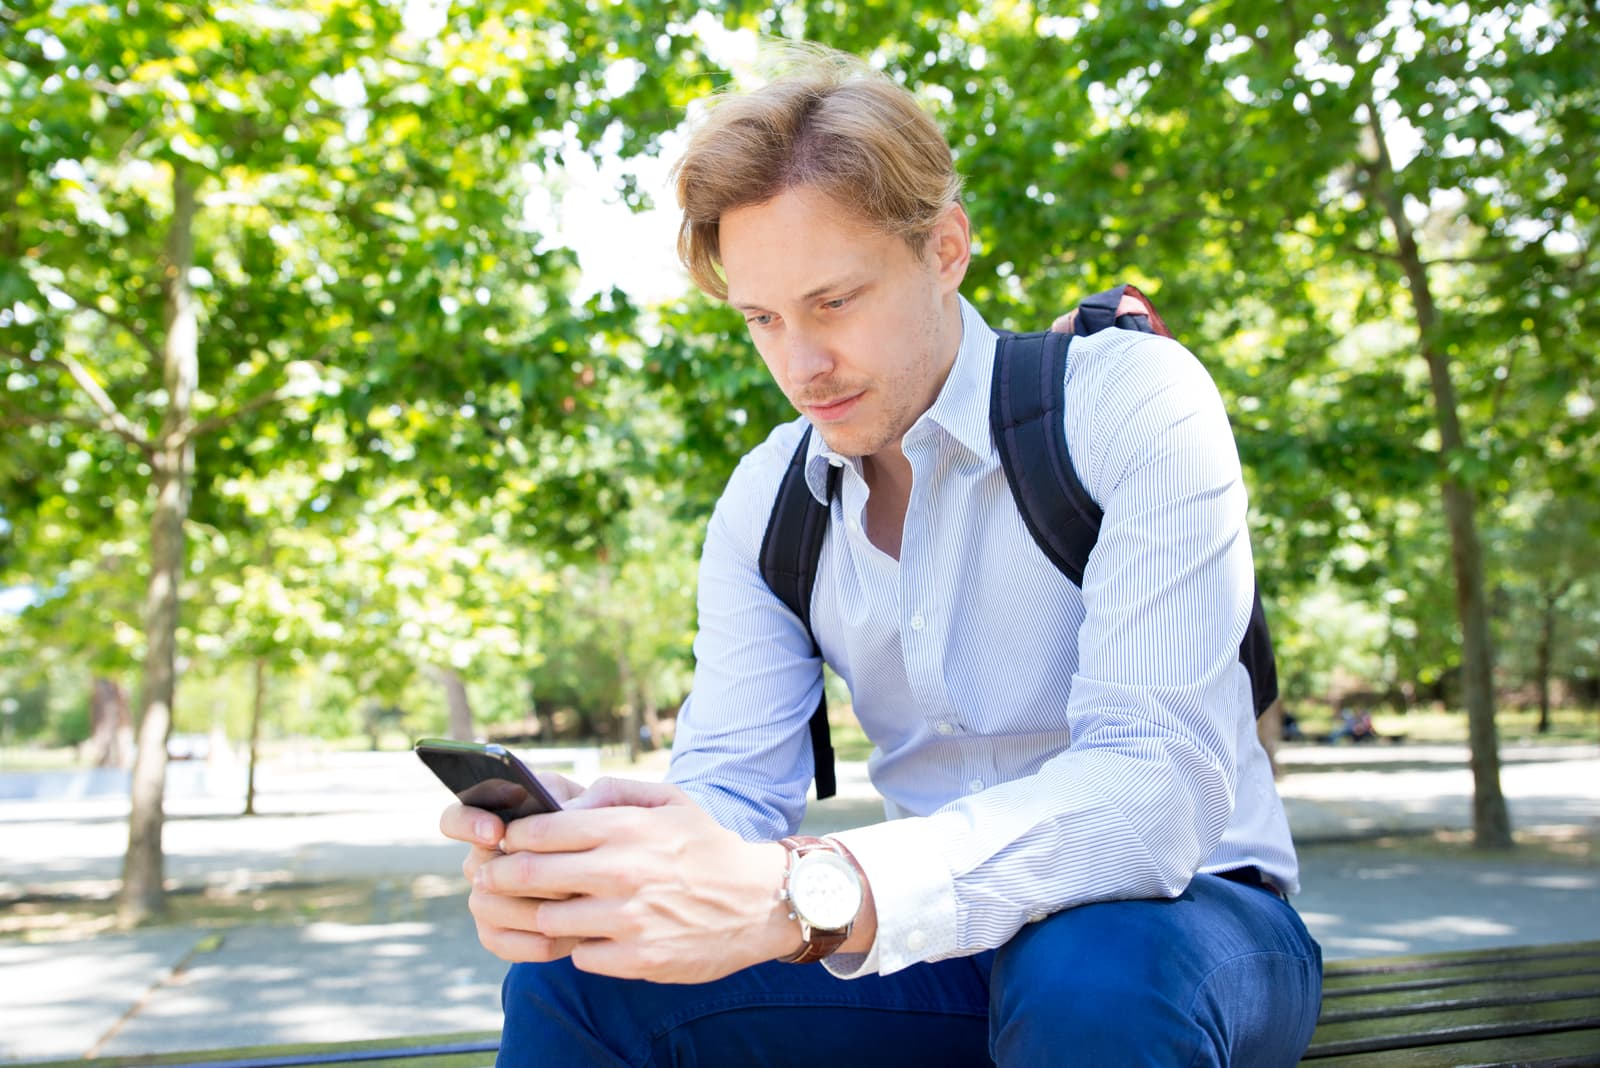 man sitting and holding his phone